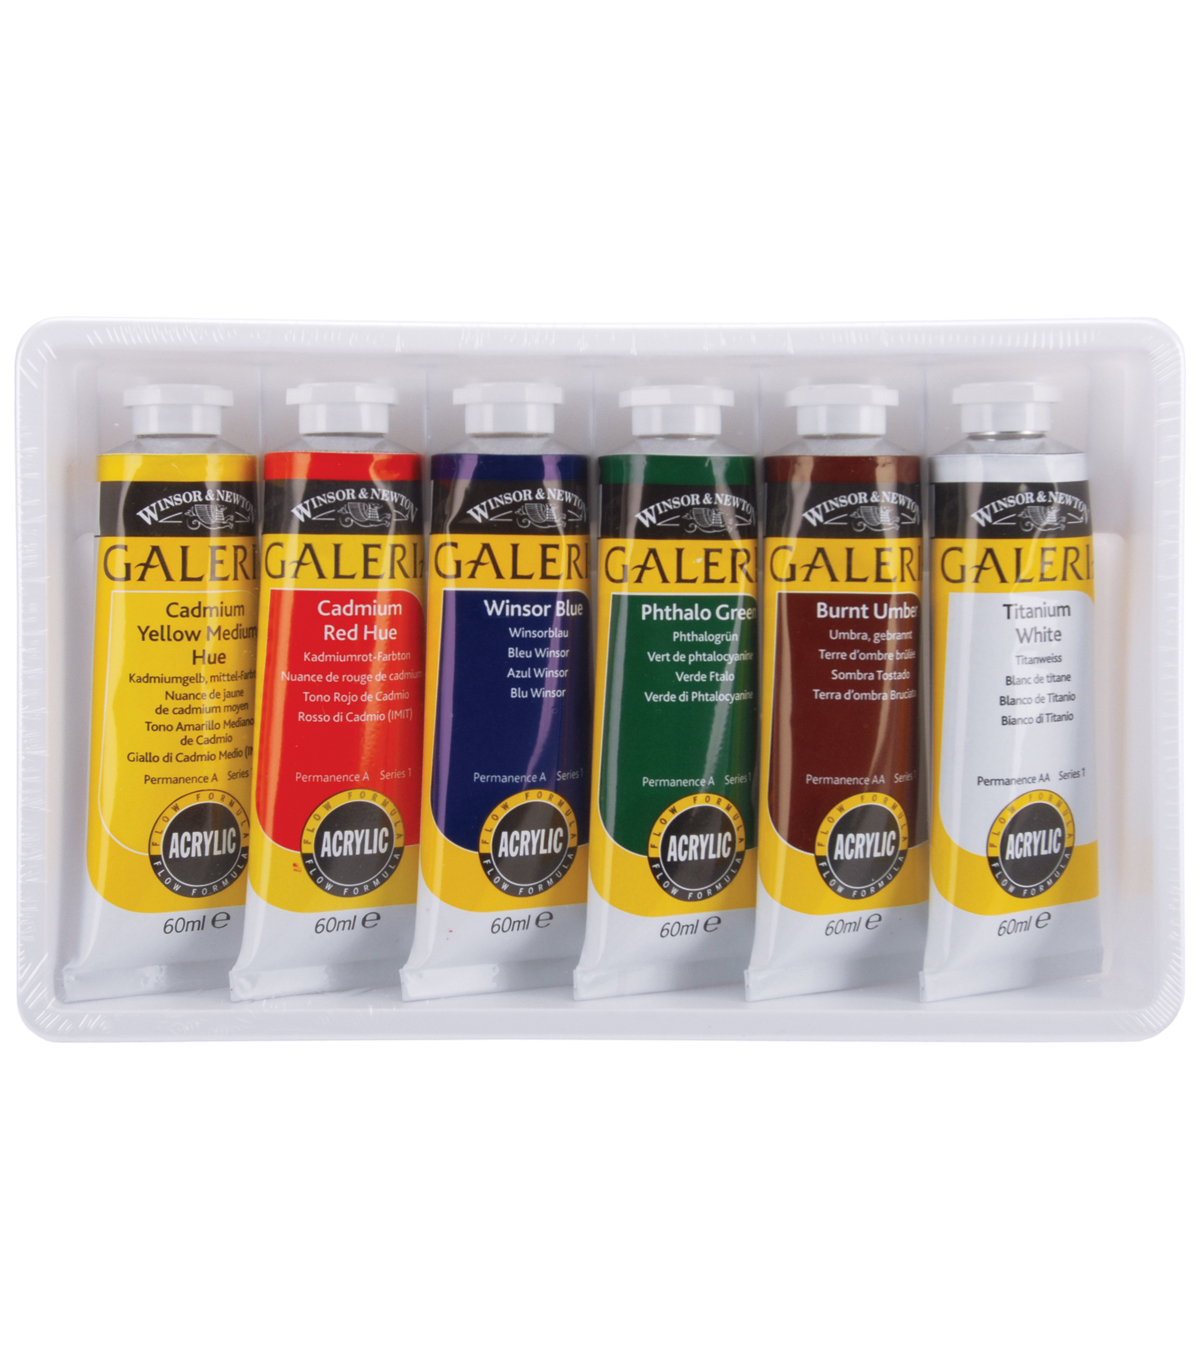 Winsor & Newton Galeria 60 mL Acrylic Paint Set-6PK